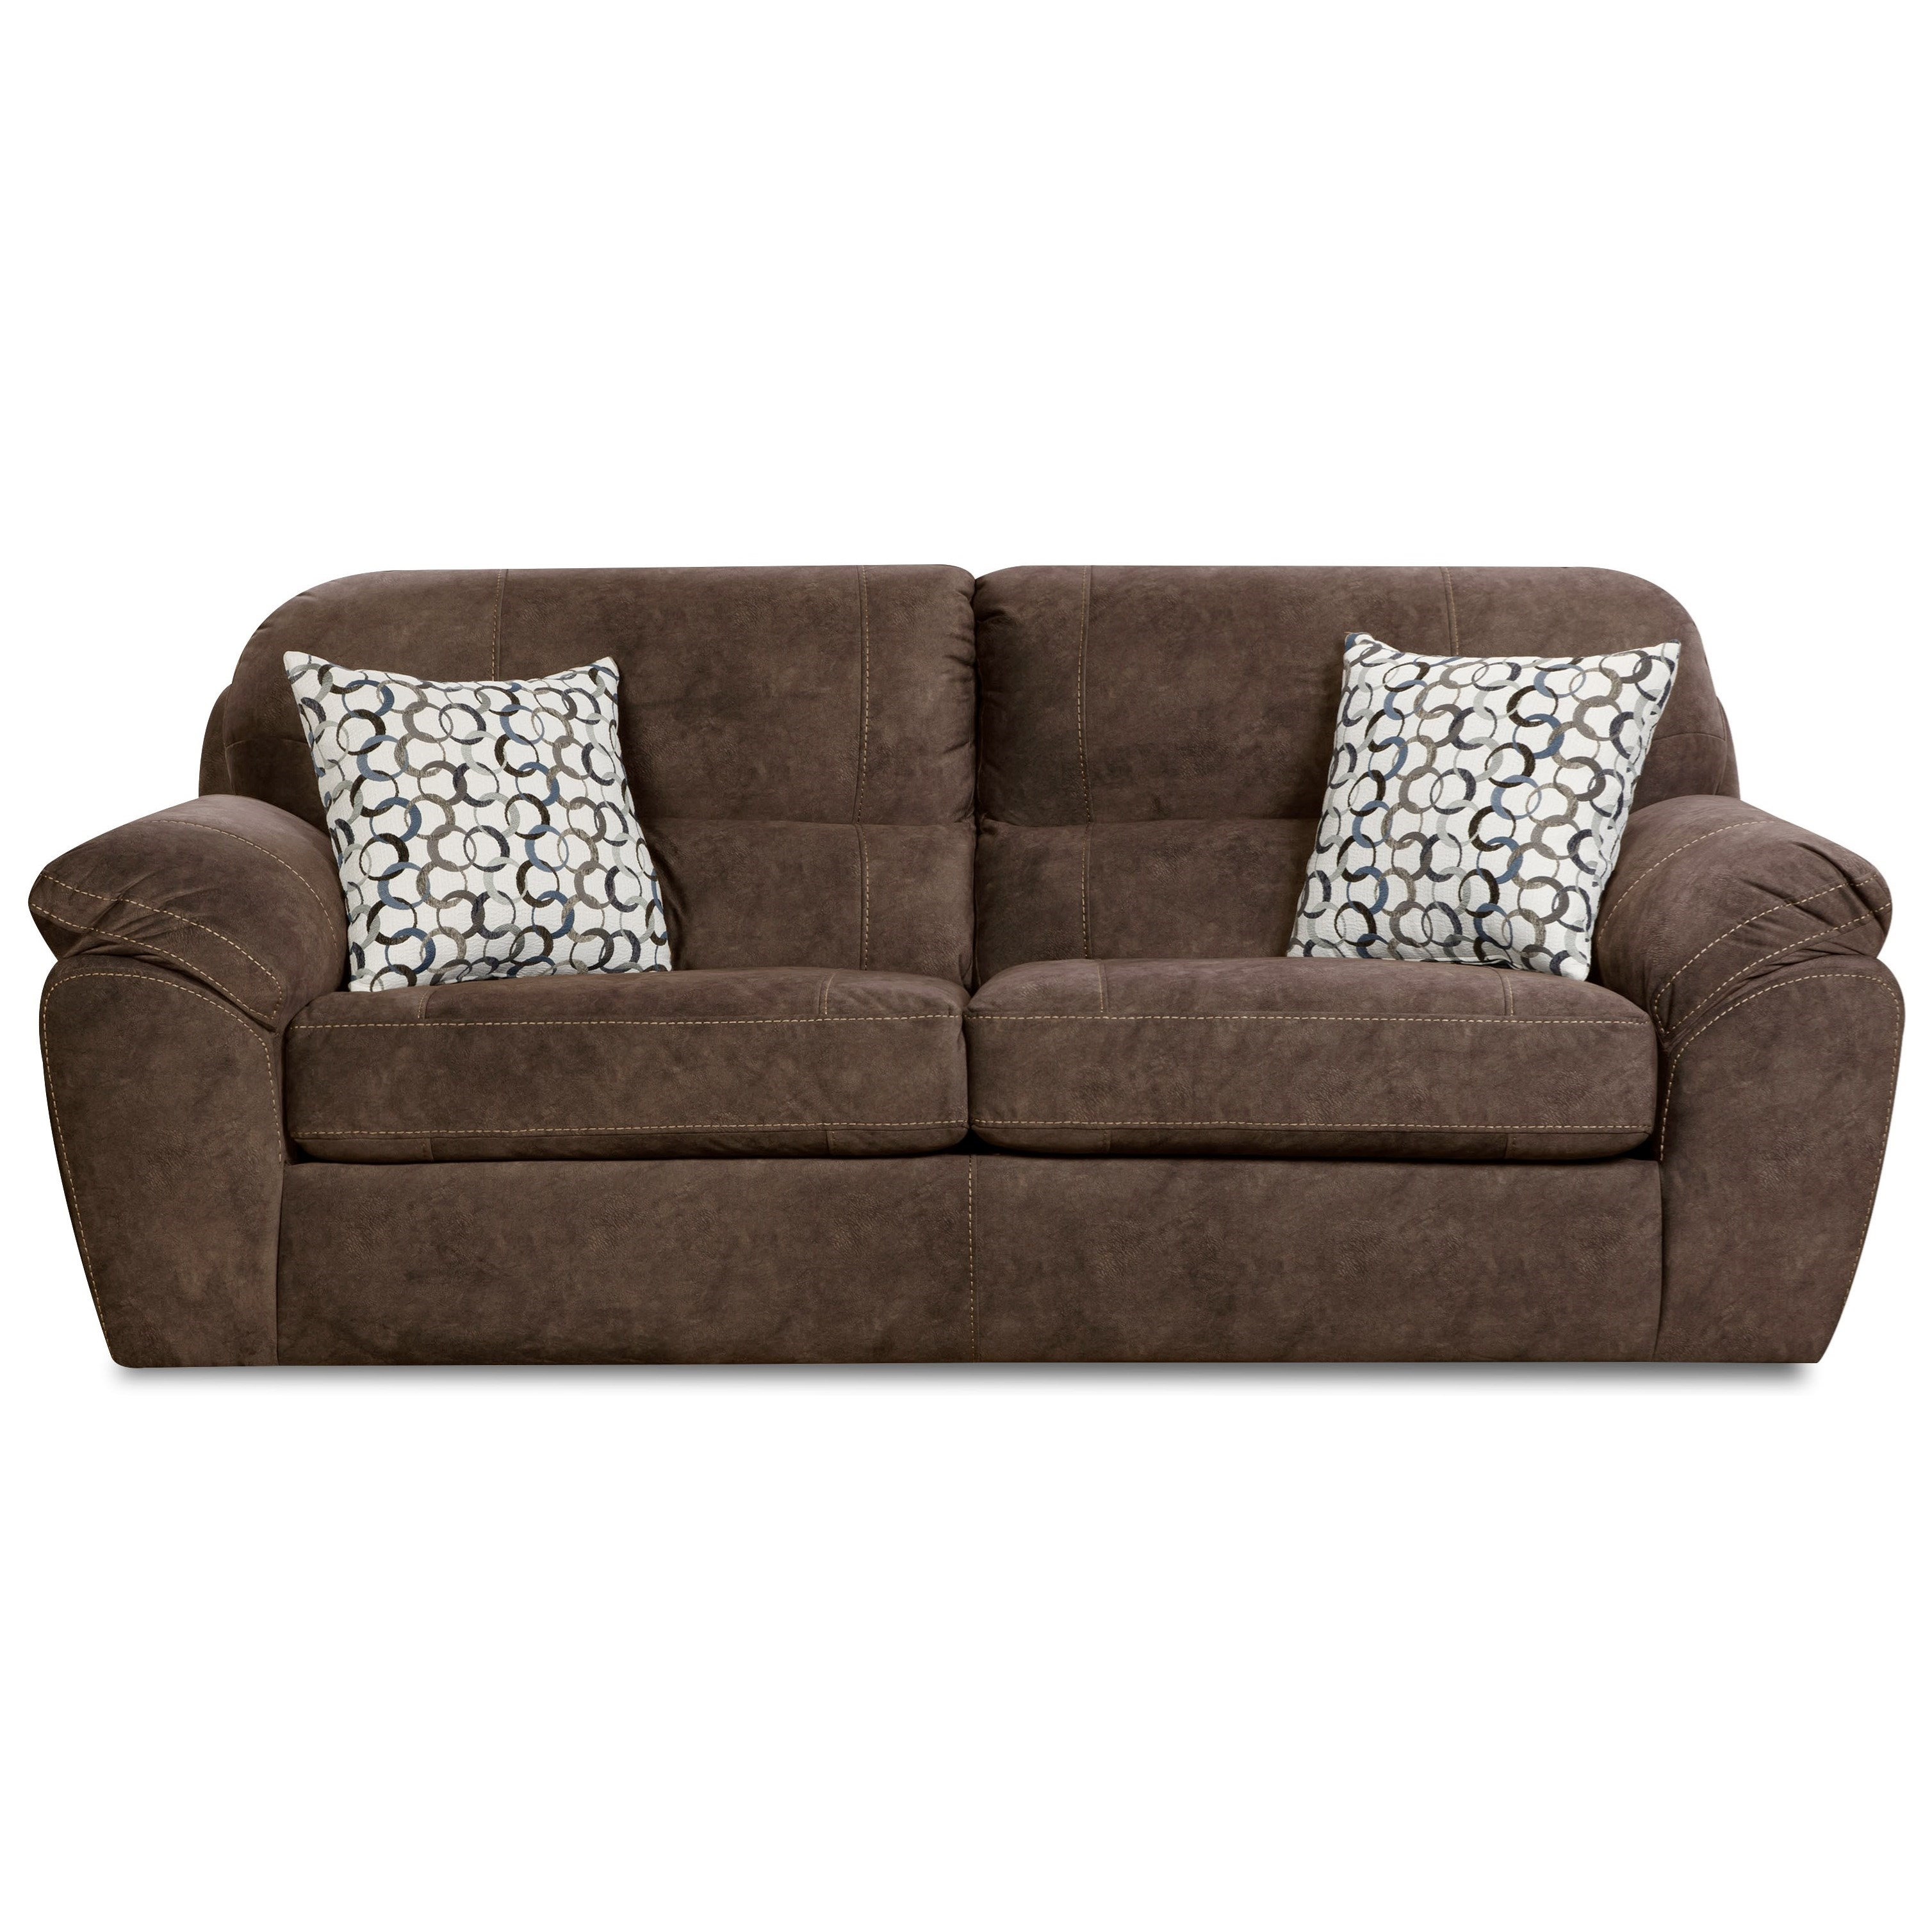 18D0 Sofa by Corinthian at Story & Lee Furniture